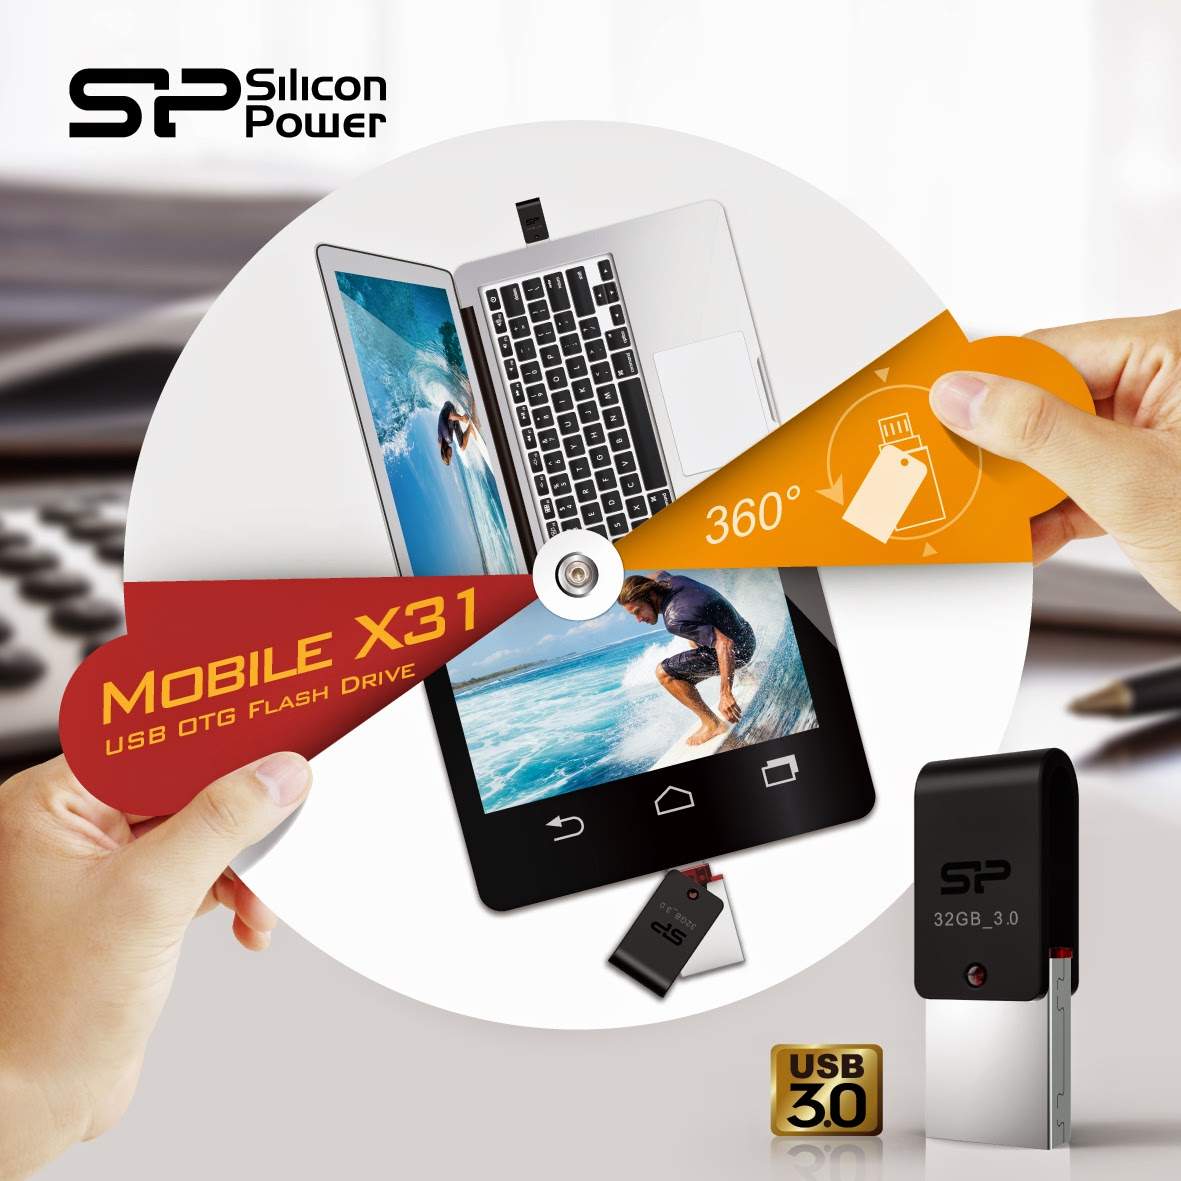 SP Mobile X31 USB 3.0 OTG flash drive